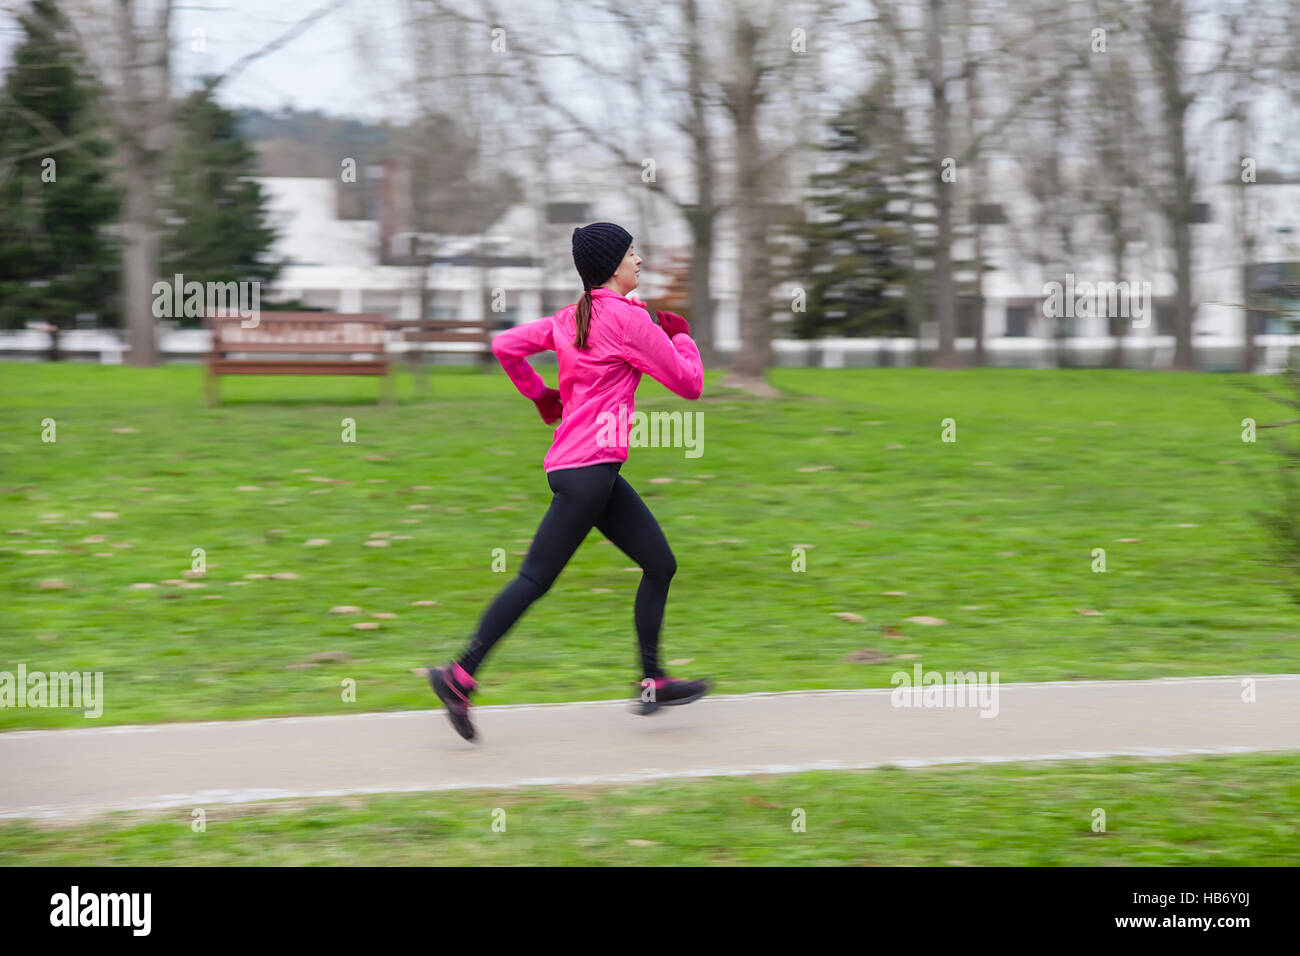 Panning image with motion blur of a young woman running on a cold winter day on an urban park. Profile or side view. - Stock Image